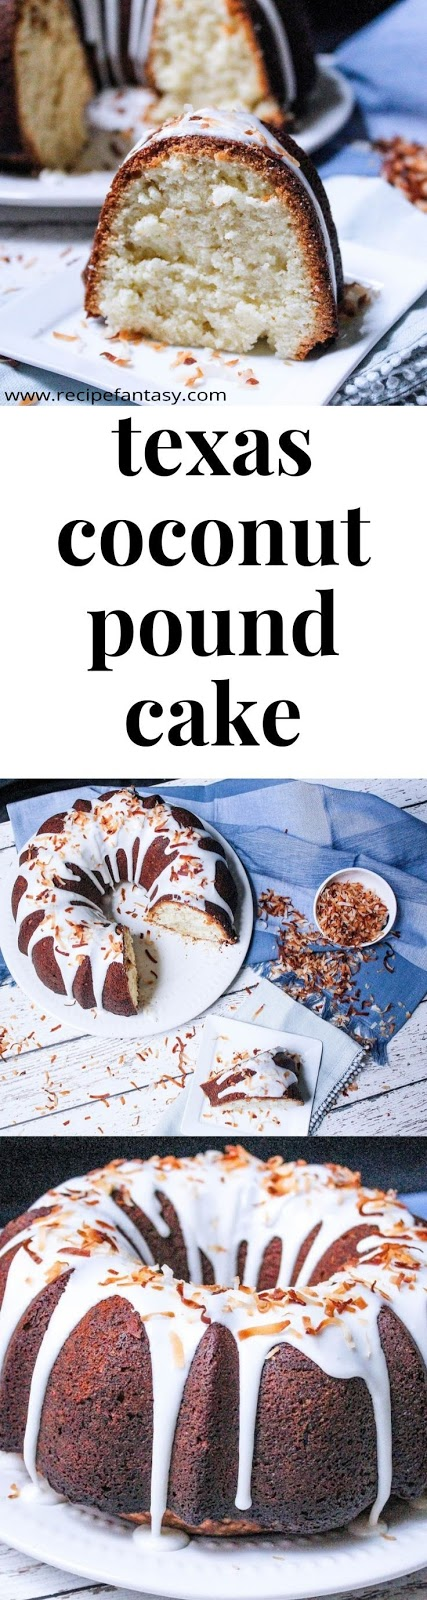 Texas Coconut Pound Cake